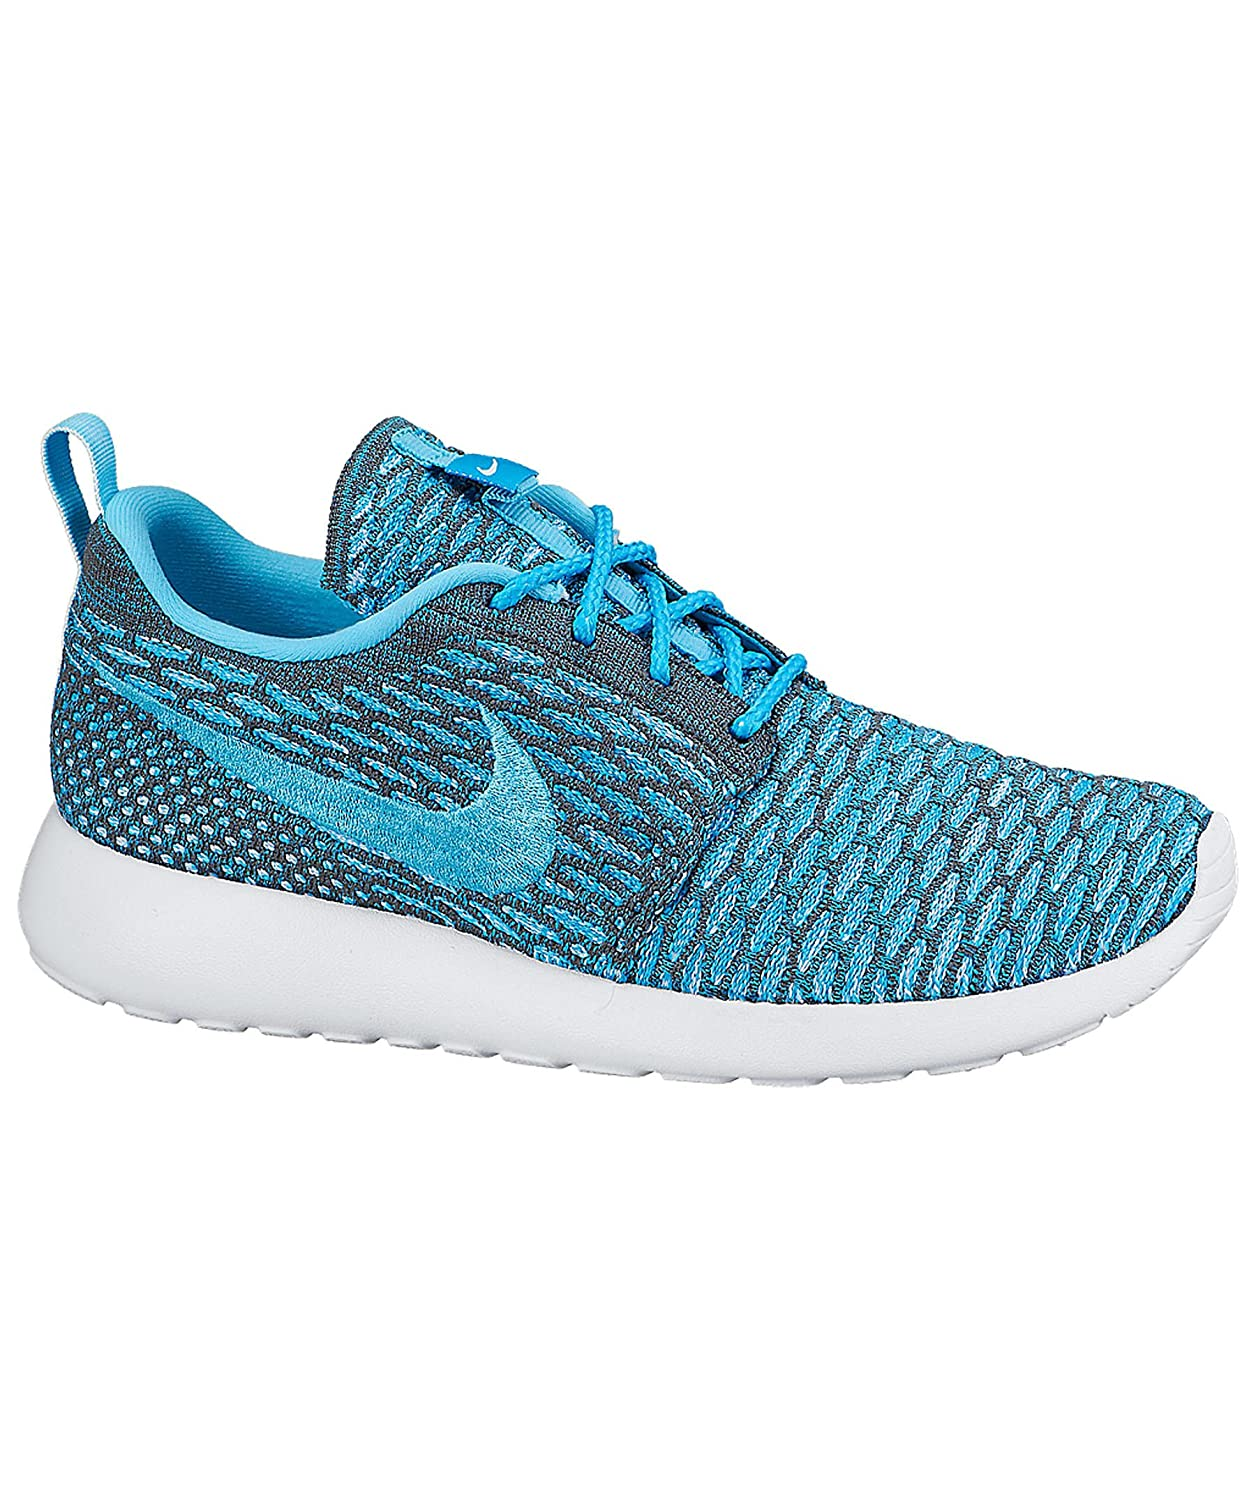 NIKE Womens Roshe One Flyknit Flyknit Colorblock Running Shoes B00TS82HA6 10 D(M) US|Dark Grey/Clearwater/Blue Lagoon/White